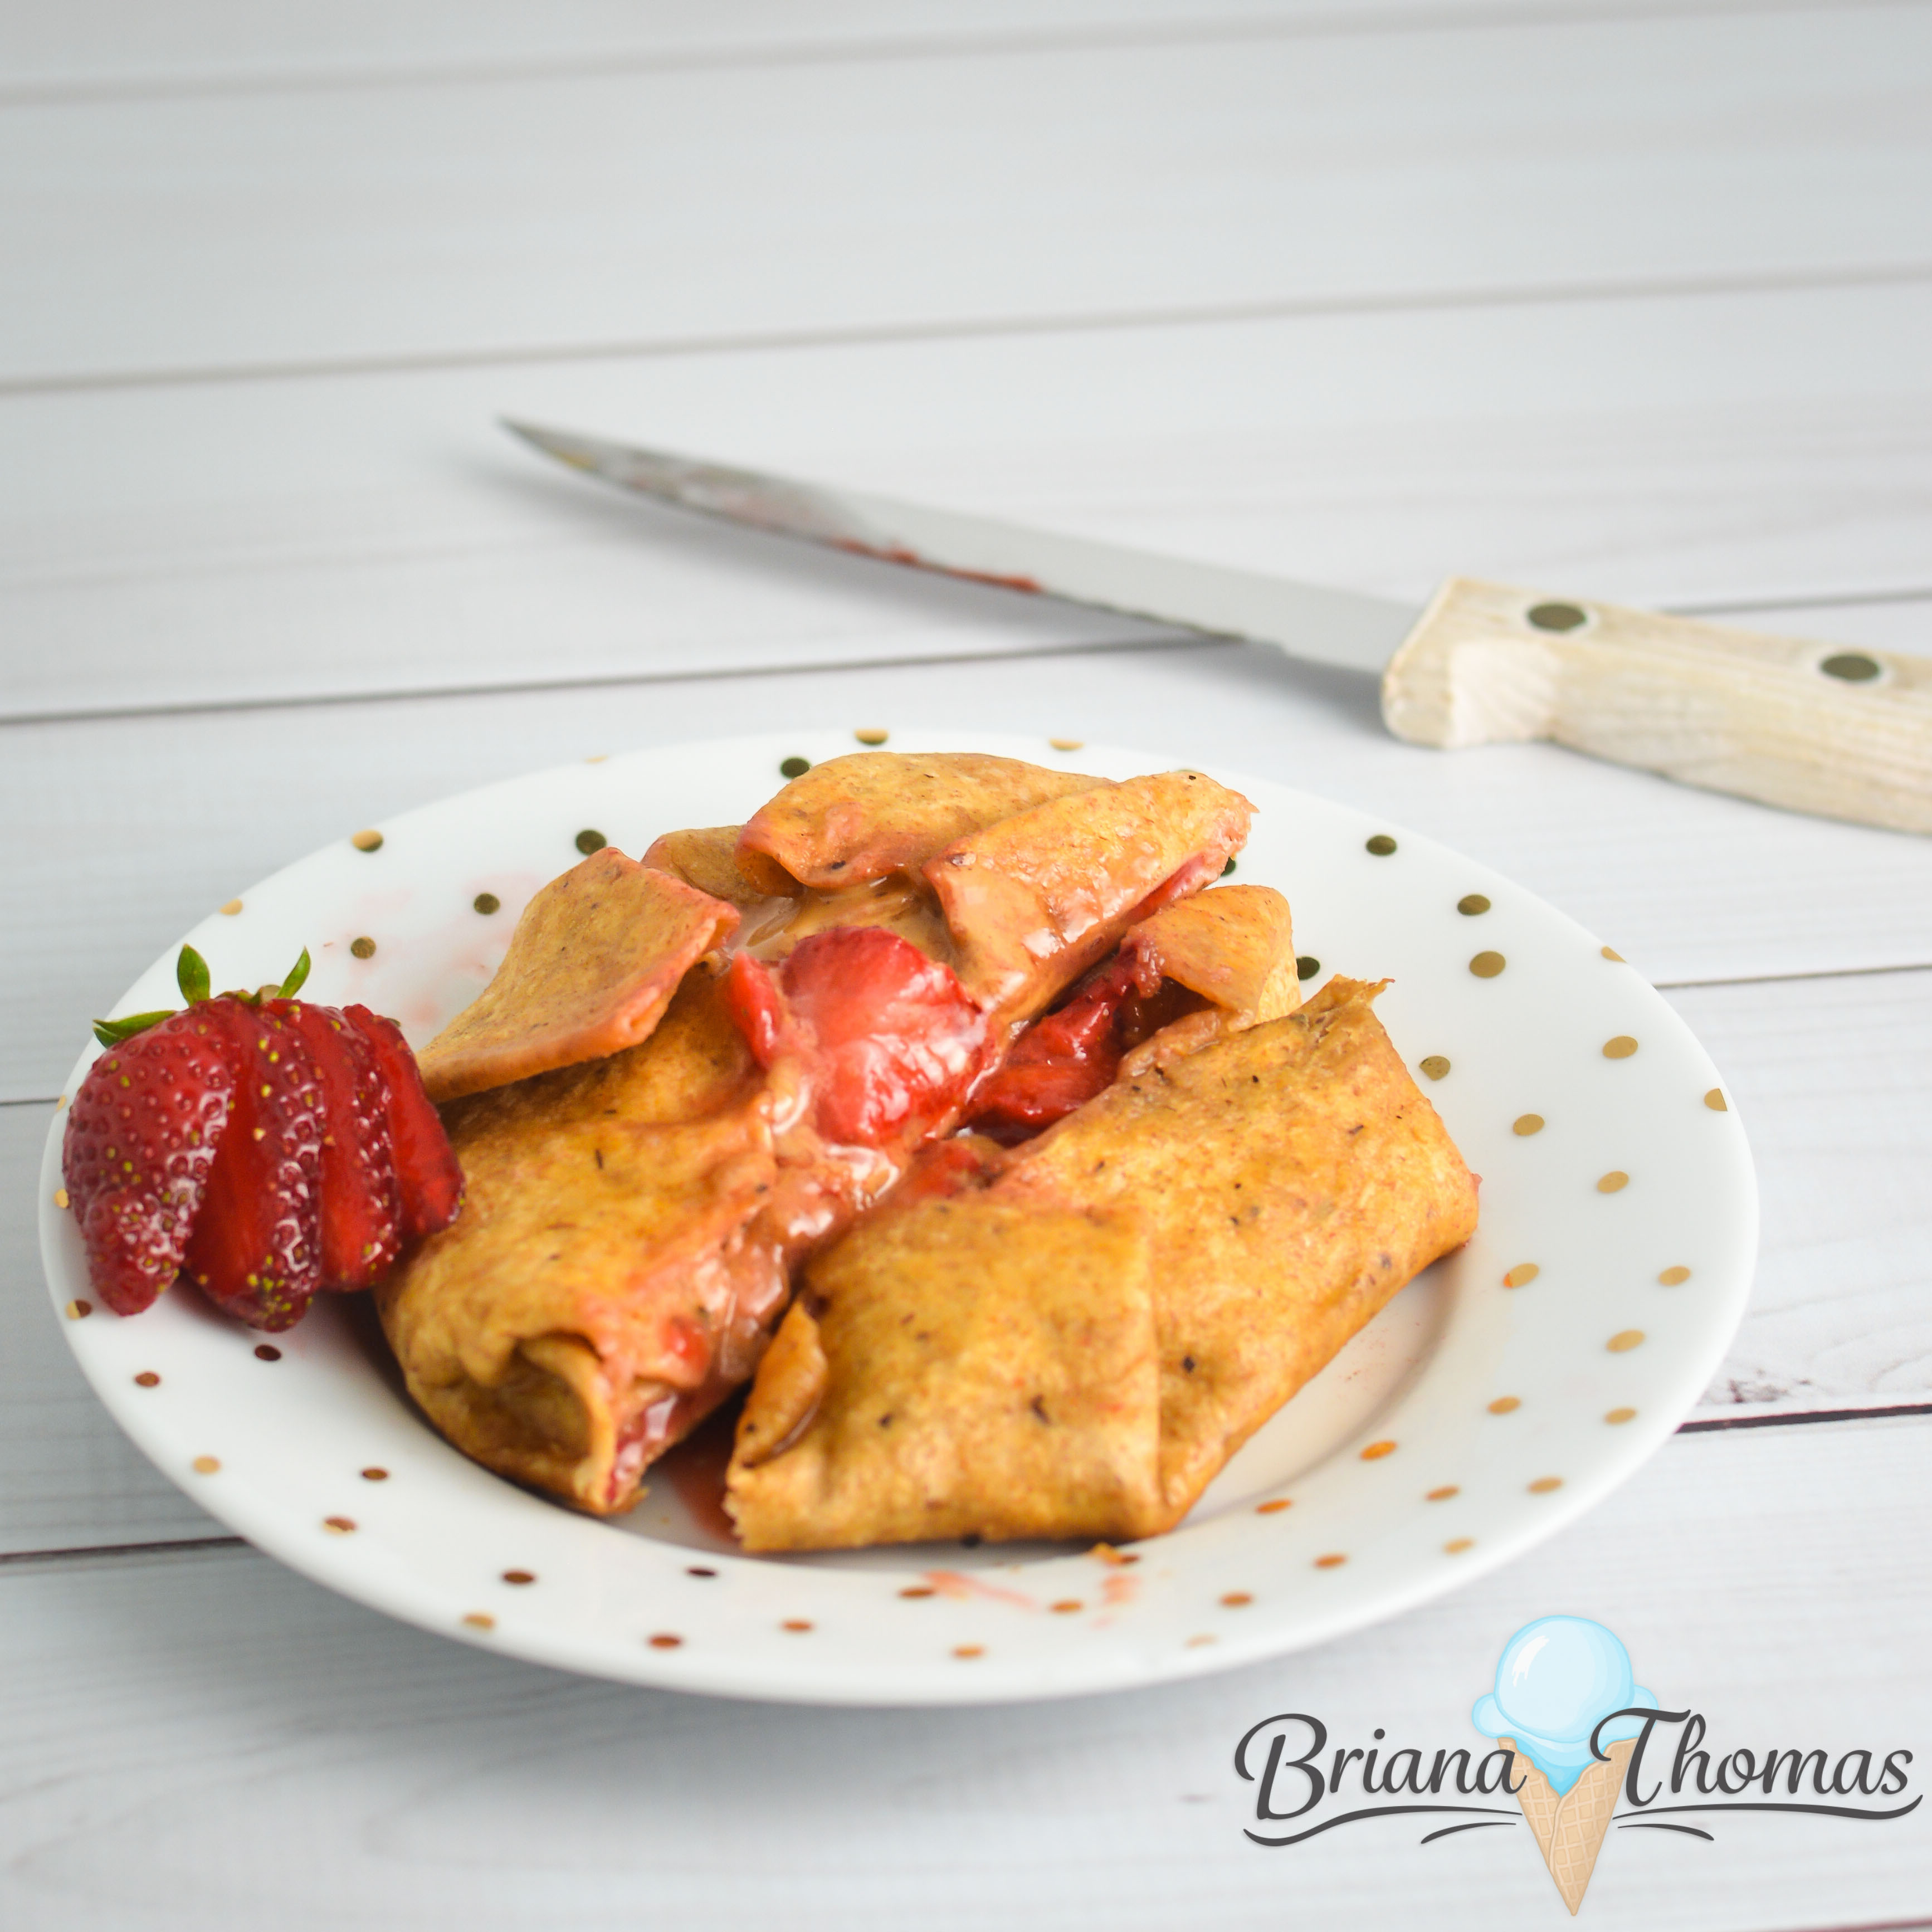 This PB&J Fried Taco is a tasty low-carb snack with all the flavors of the classic sandwich + a crispy taco shell fried in coconut oil! THM:S